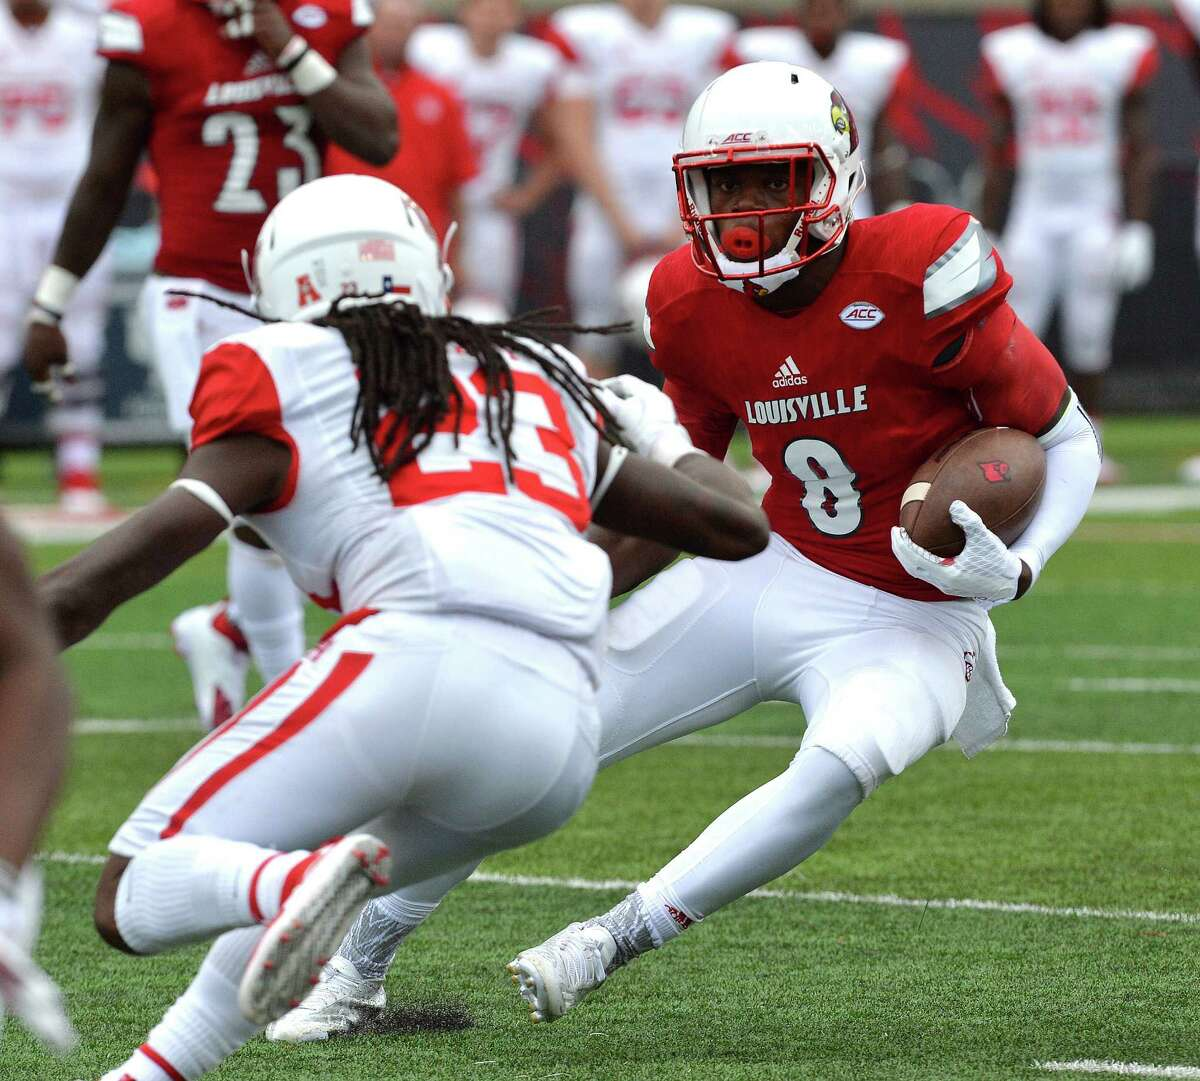 Louisville quarterback Lamar Gackson (8) attempts to run the ball past the defense of Houston's Trevon Stewart (23) during the second half of an NCAA college football game in Louisville, Ky. Saturday, Sept. 12, 2015. Houston defeated Louisville 34-31. (AP Photo/Timothy D. Easley)